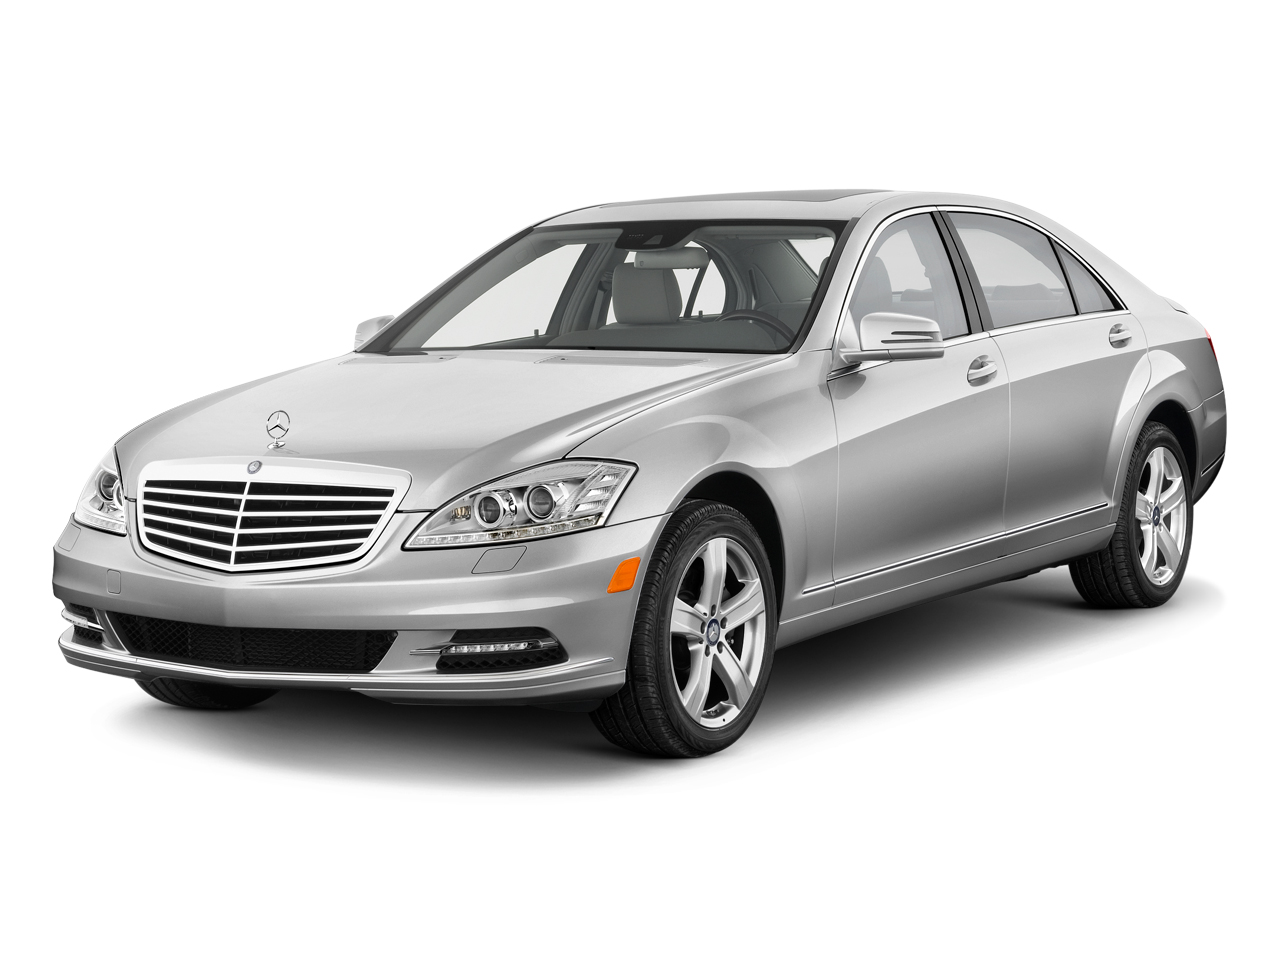 2011 mercedes benz s class review and news motorauthority for 2011 mercedes benz s class